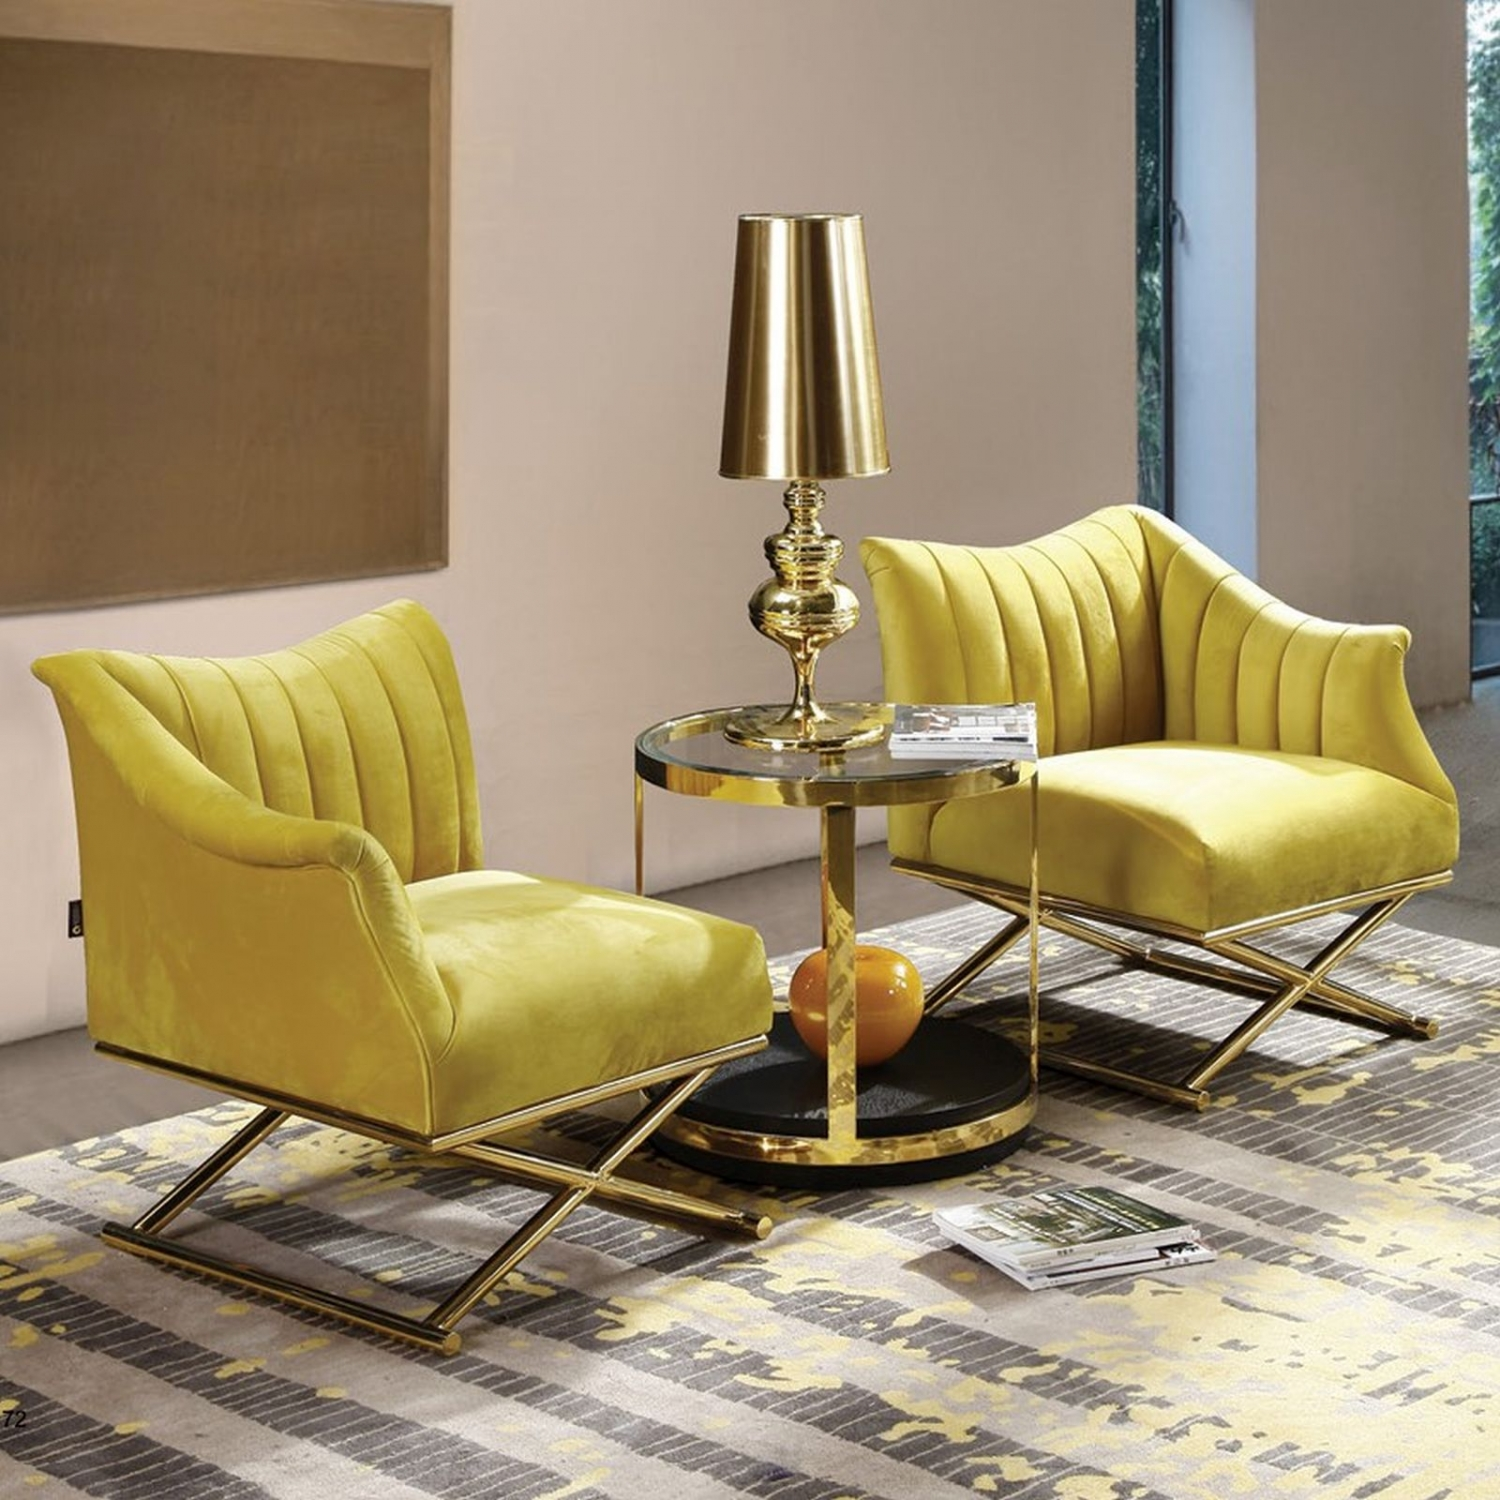 Magnificent Details About Kilian Contemporary Art Deco Furniture Pair Of Luxury Cross Base Yellow Chairs Creativecarmelina Interior Chair Design Creativecarmelinacom